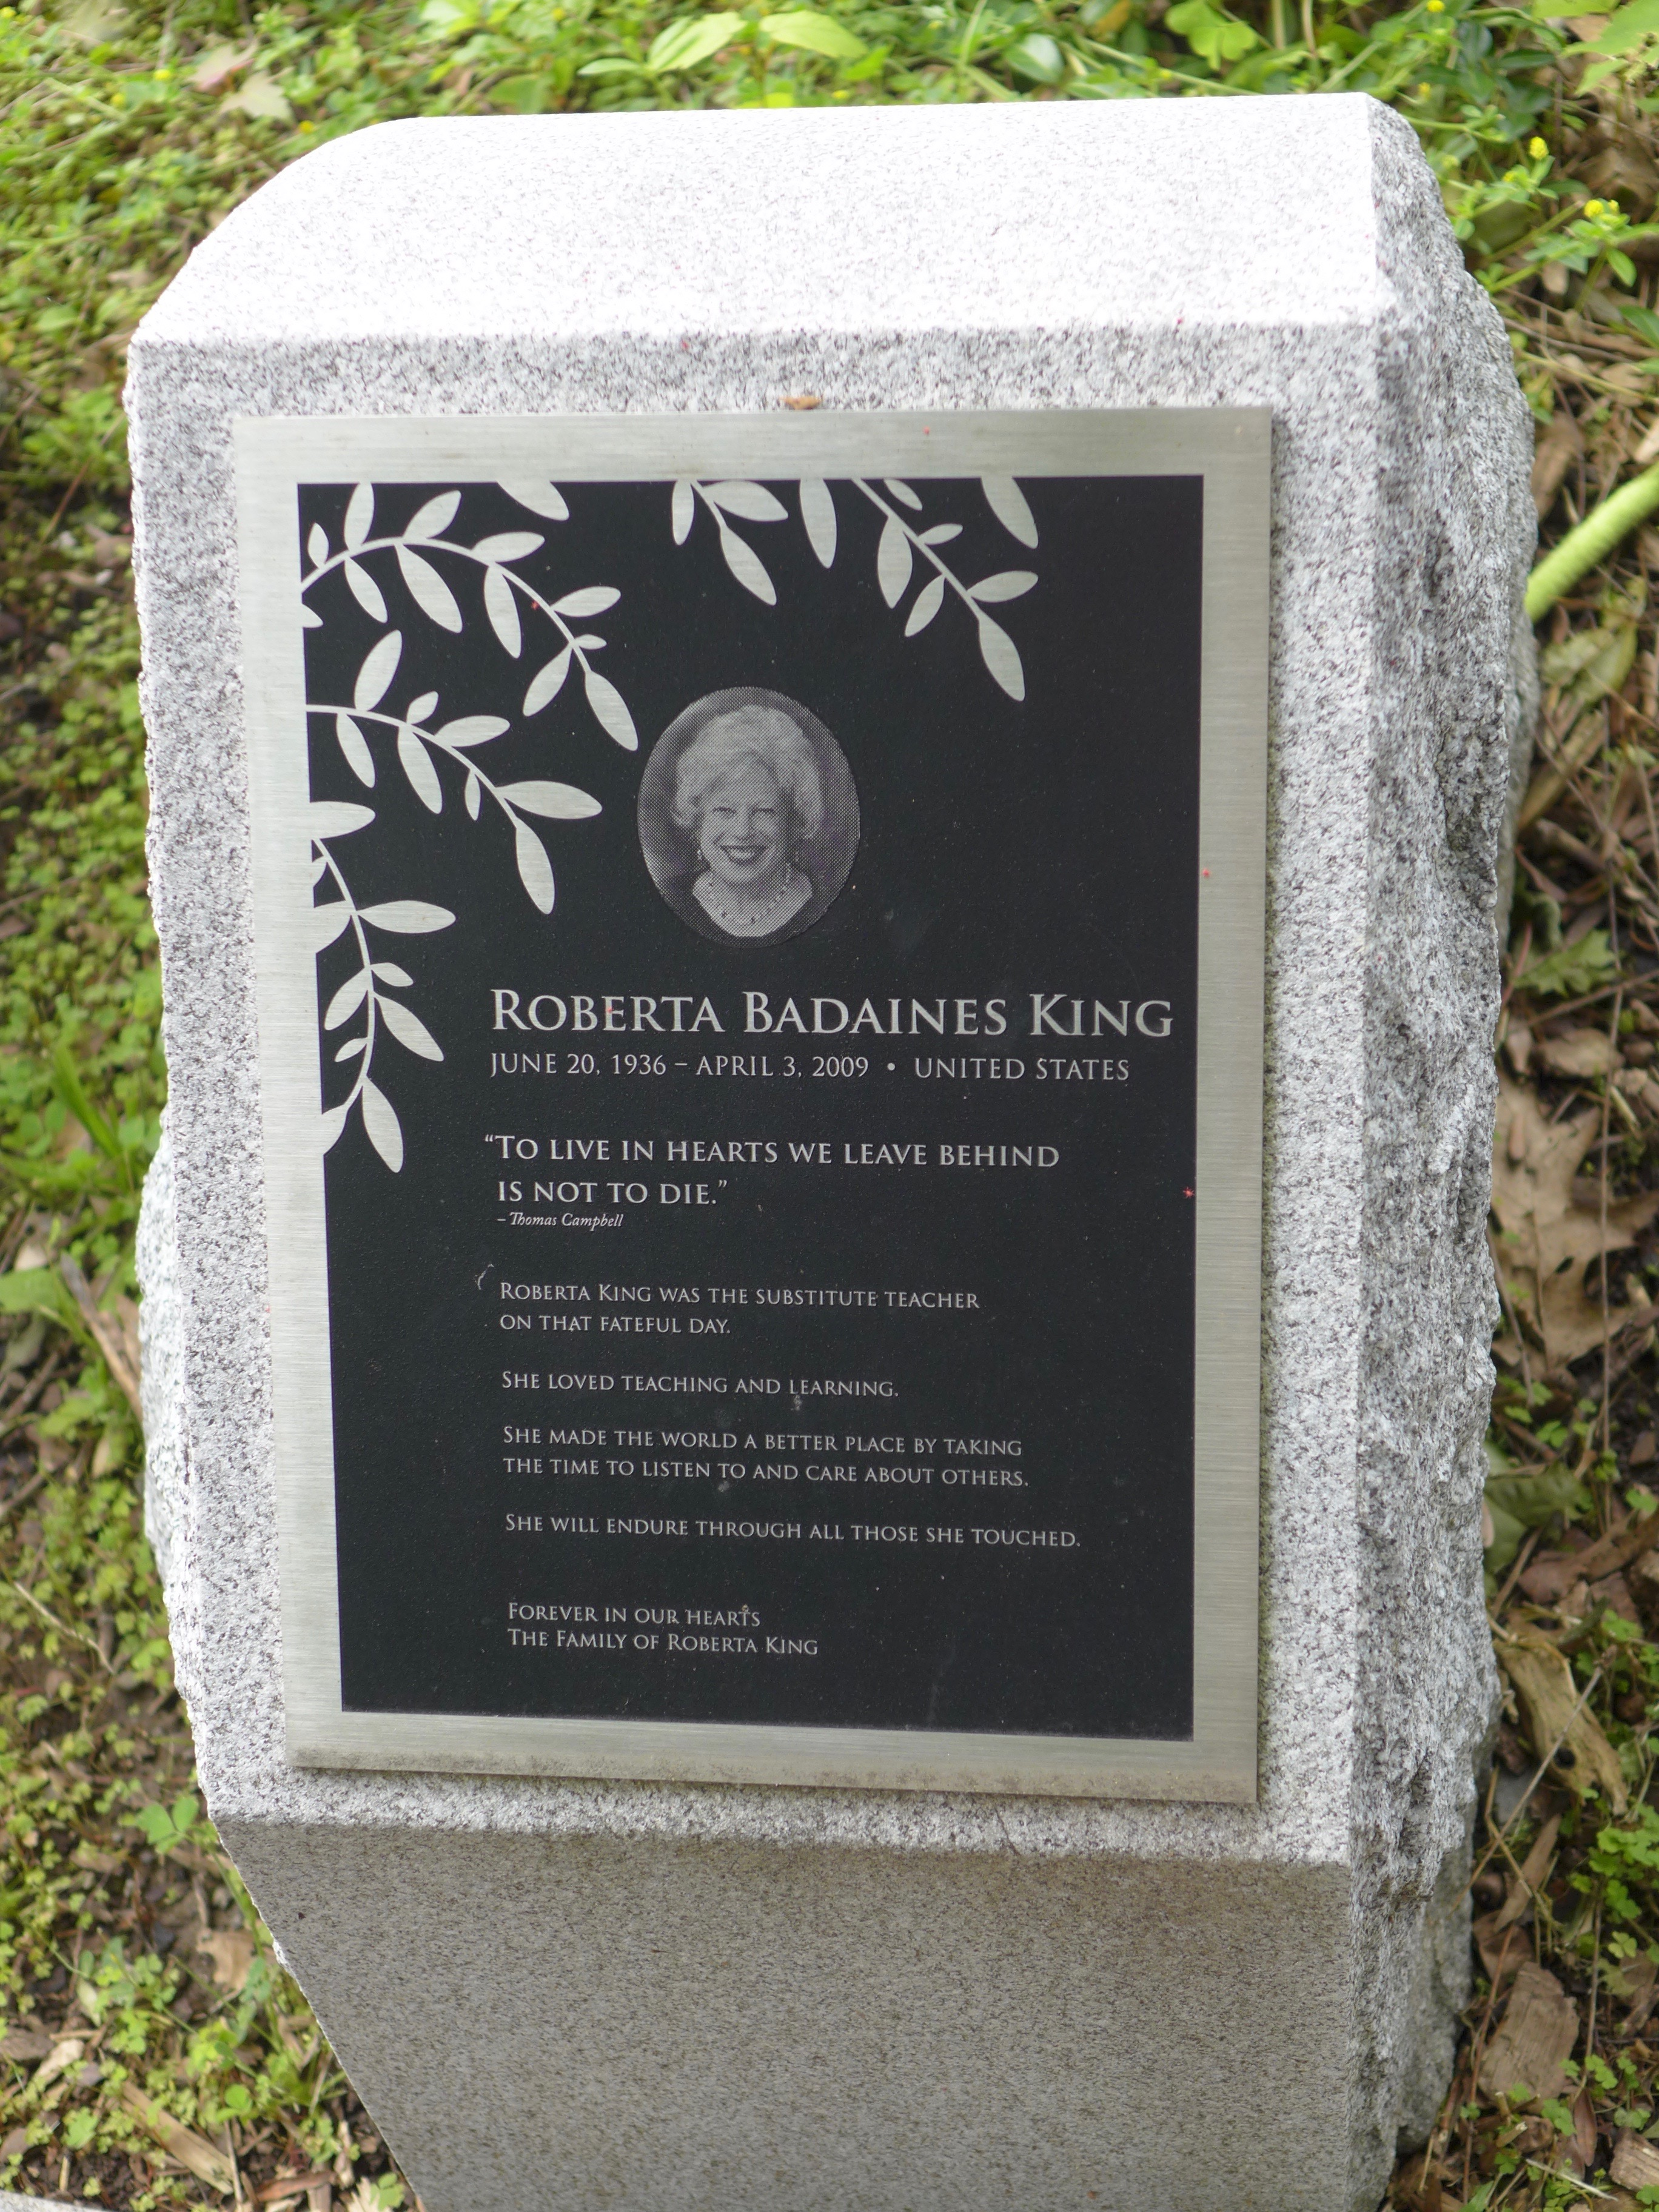 Memorial stone: Roberta Badaines King / United States